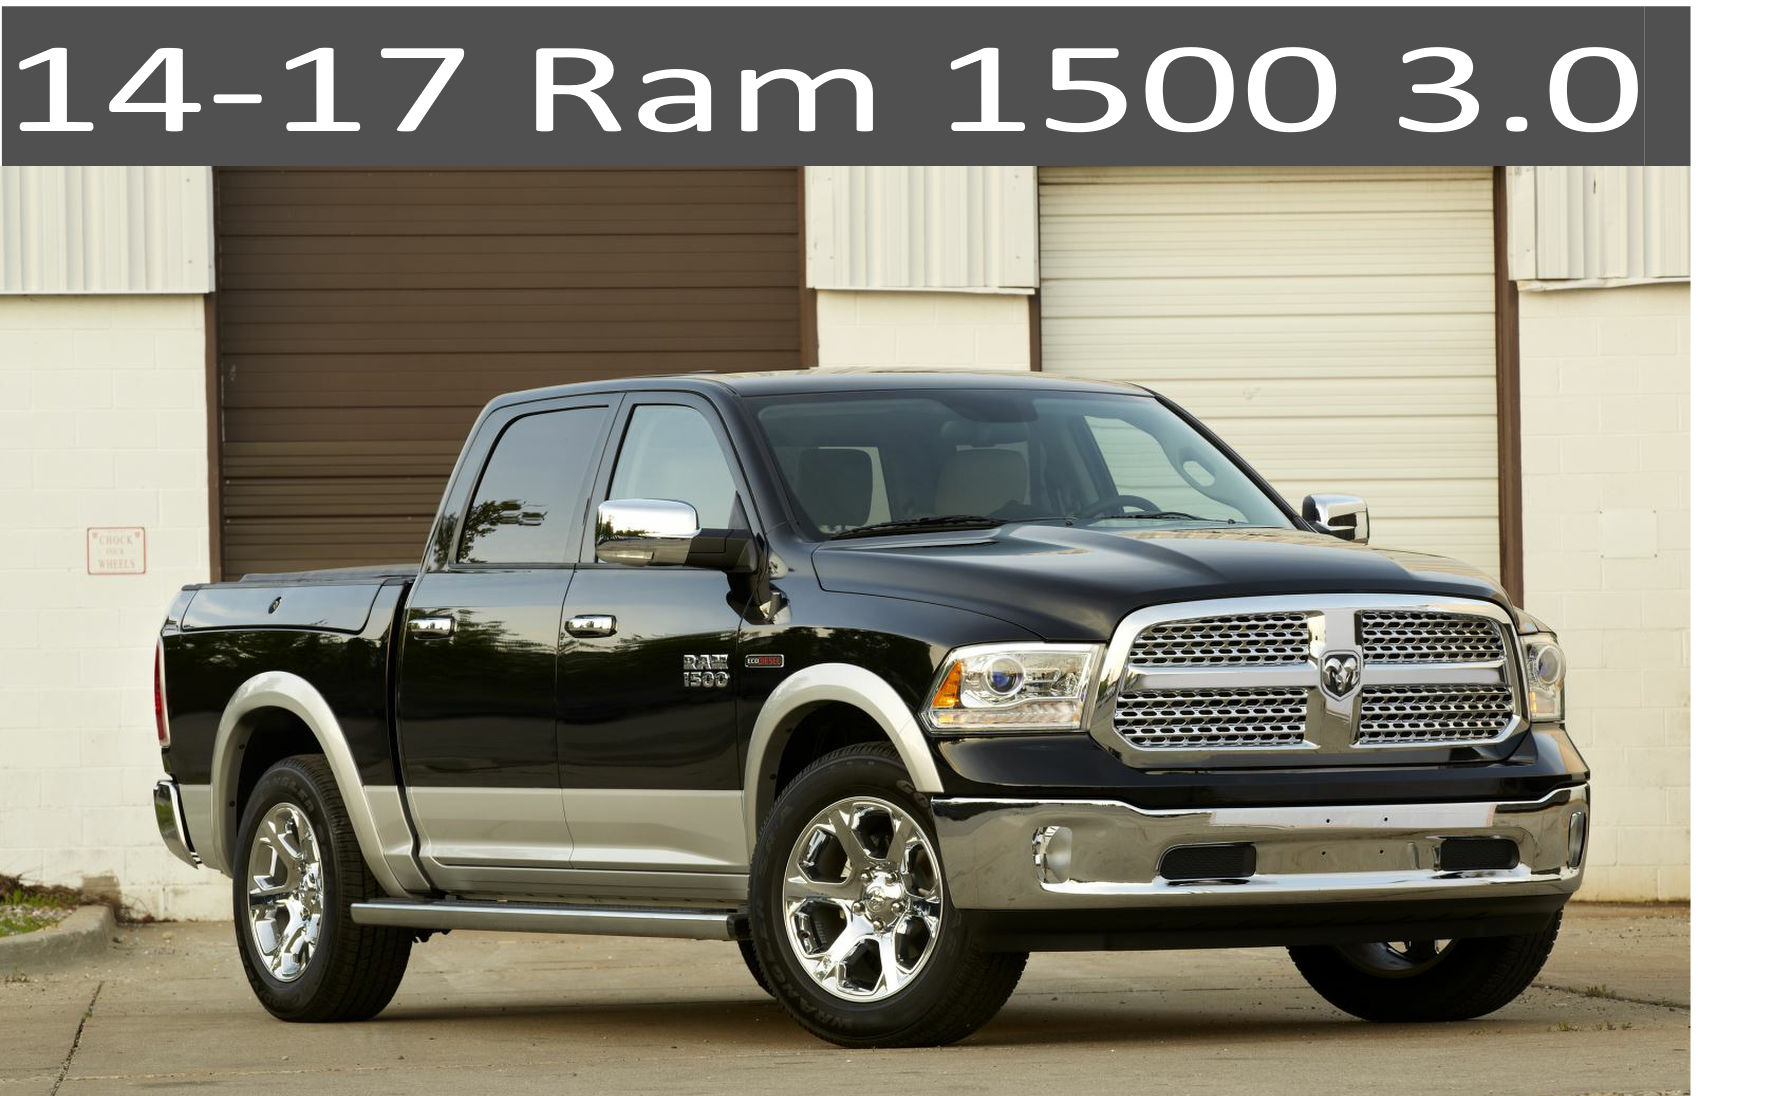 14-17 Dodge Ram 1500 3.0 Eco Diesel Parts